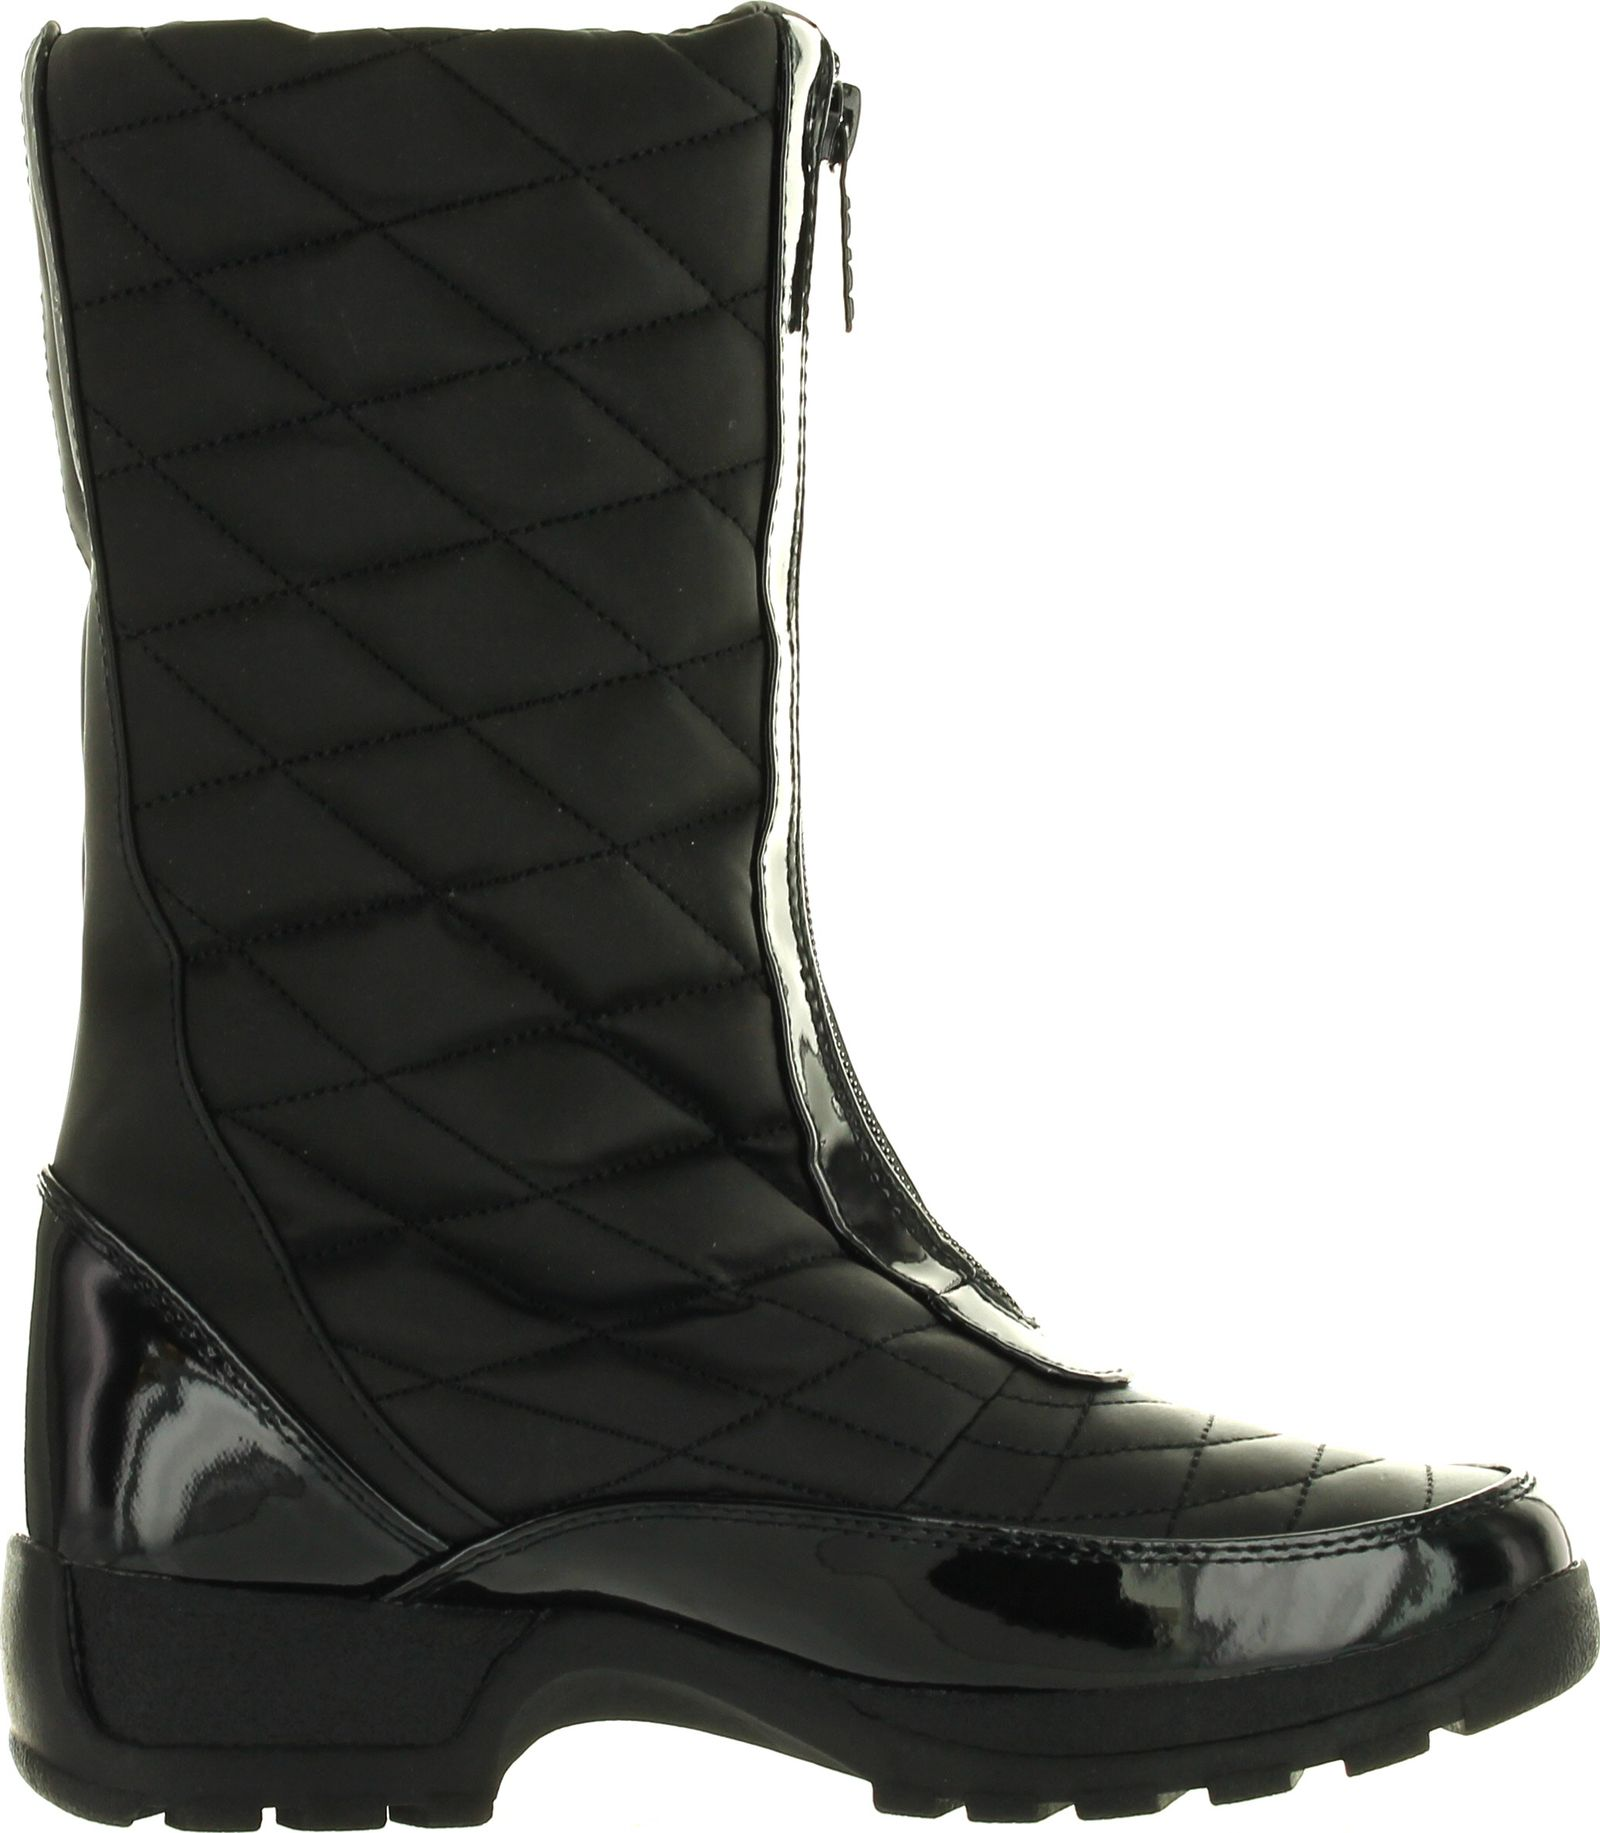 Totes Womens Diamond Winter Cold Weather Boots | eBay